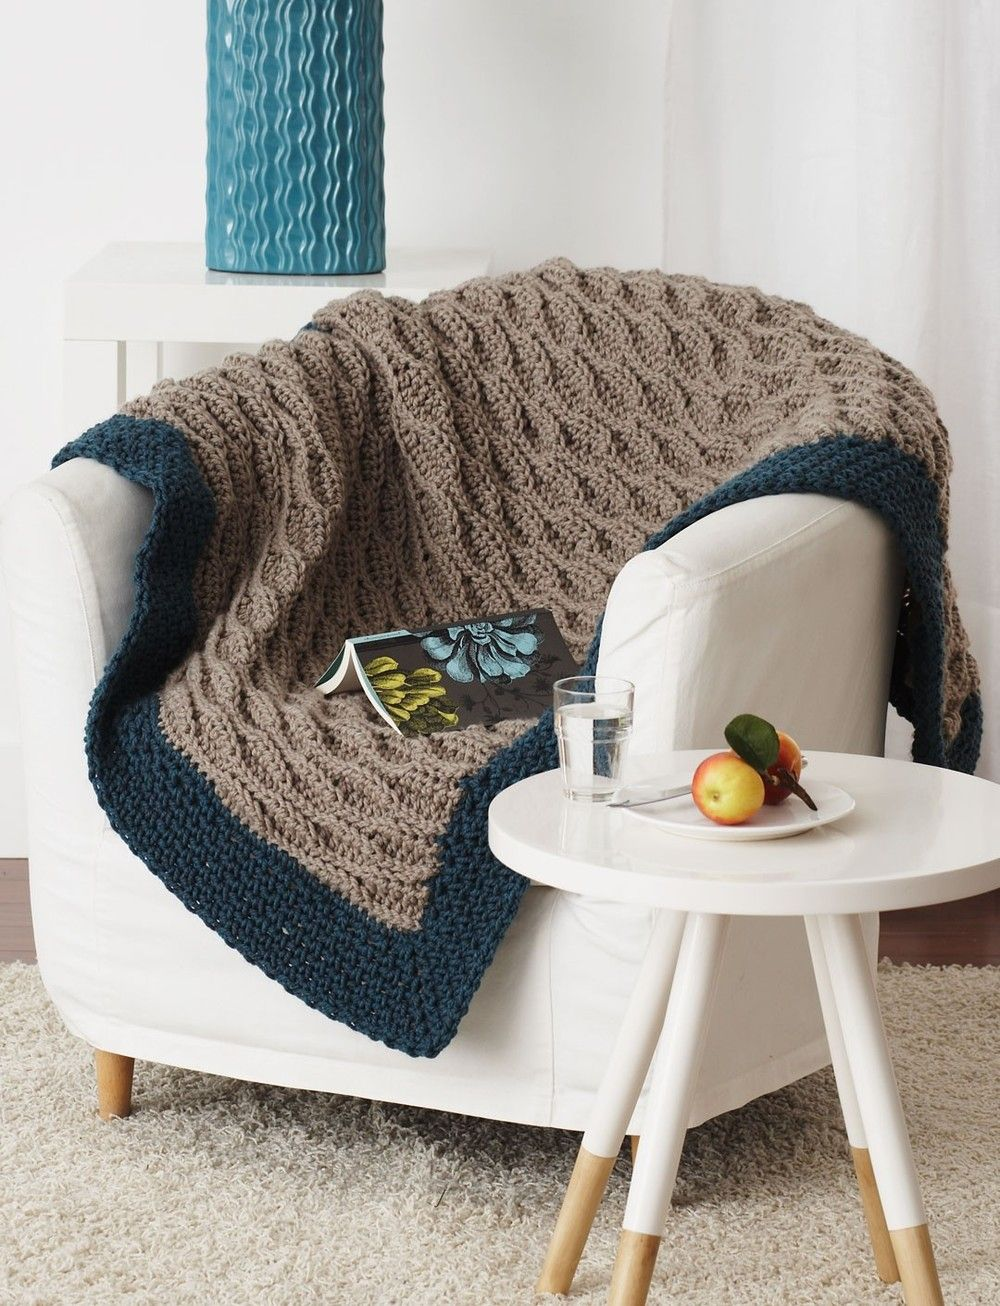 Make it quick afghan afghans quick crochet patterns and crochet make it quick afghan free crochet afghan patternscrochet bankloansurffo Gallery